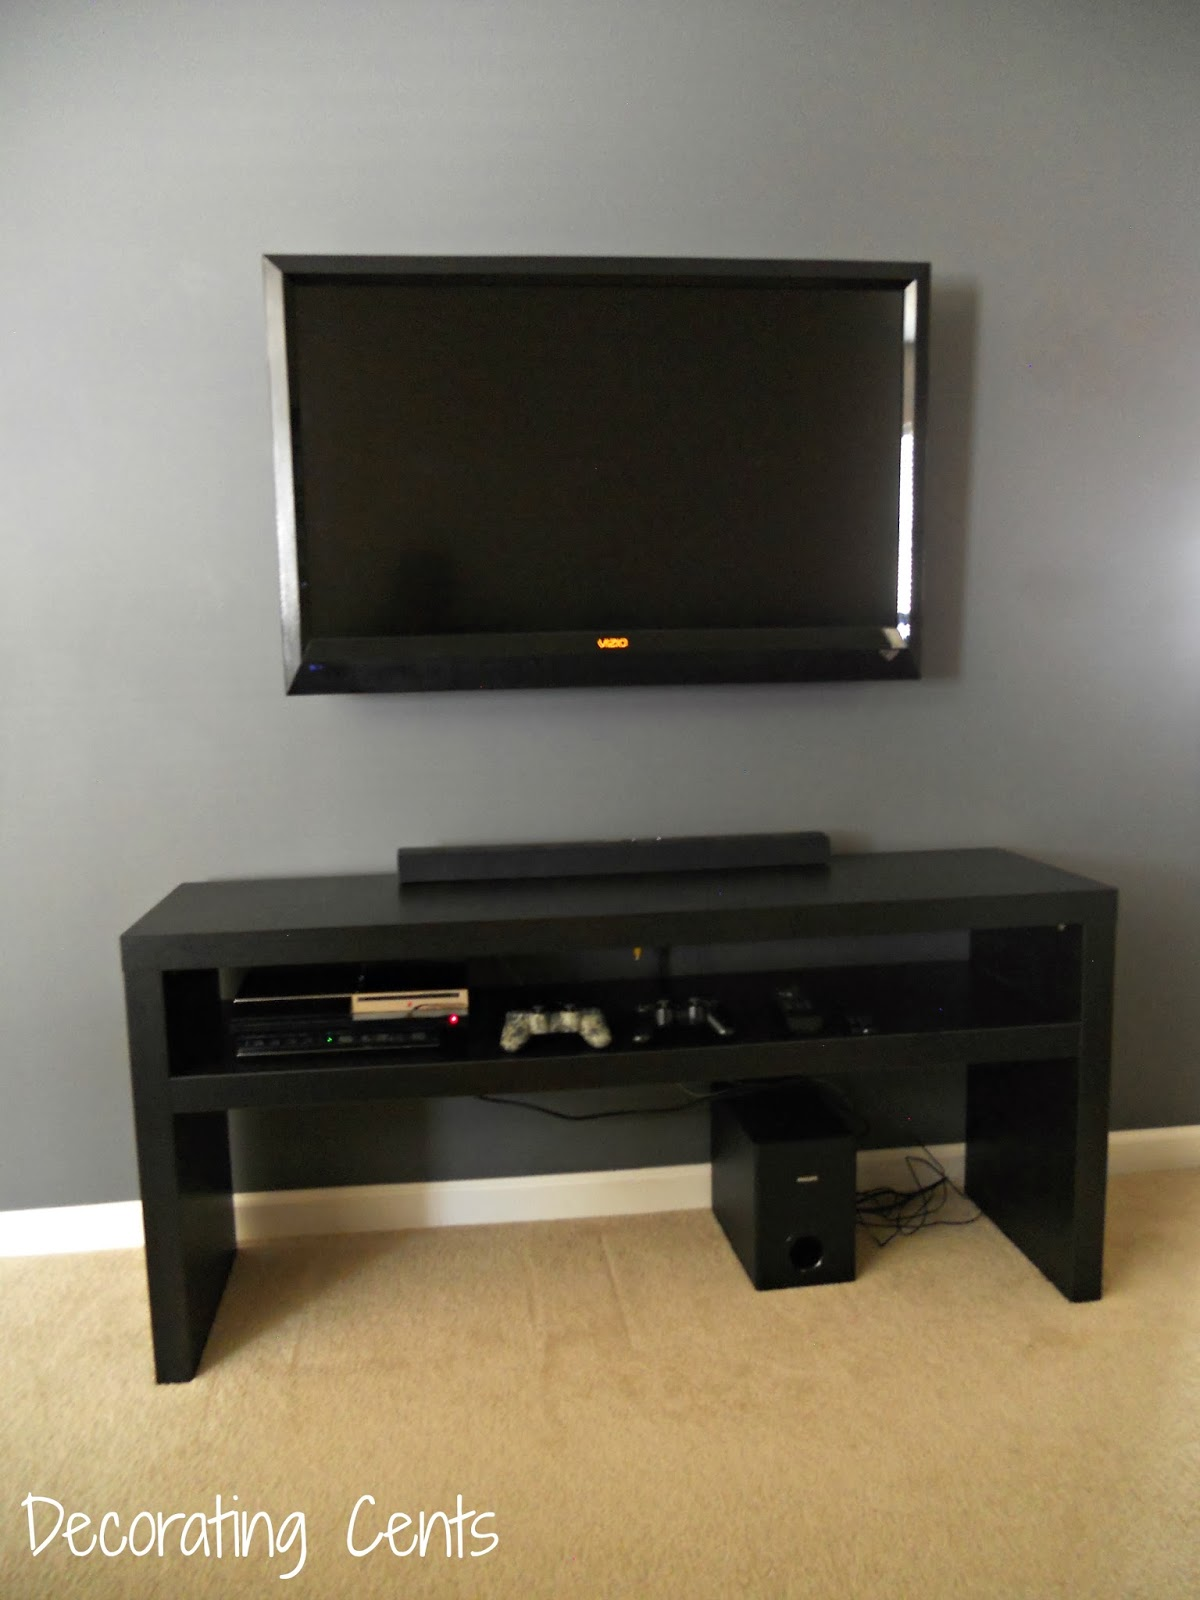 Hide Tv In Wall Decorating Cents Wall Mounted Tv And Hiding The Cords